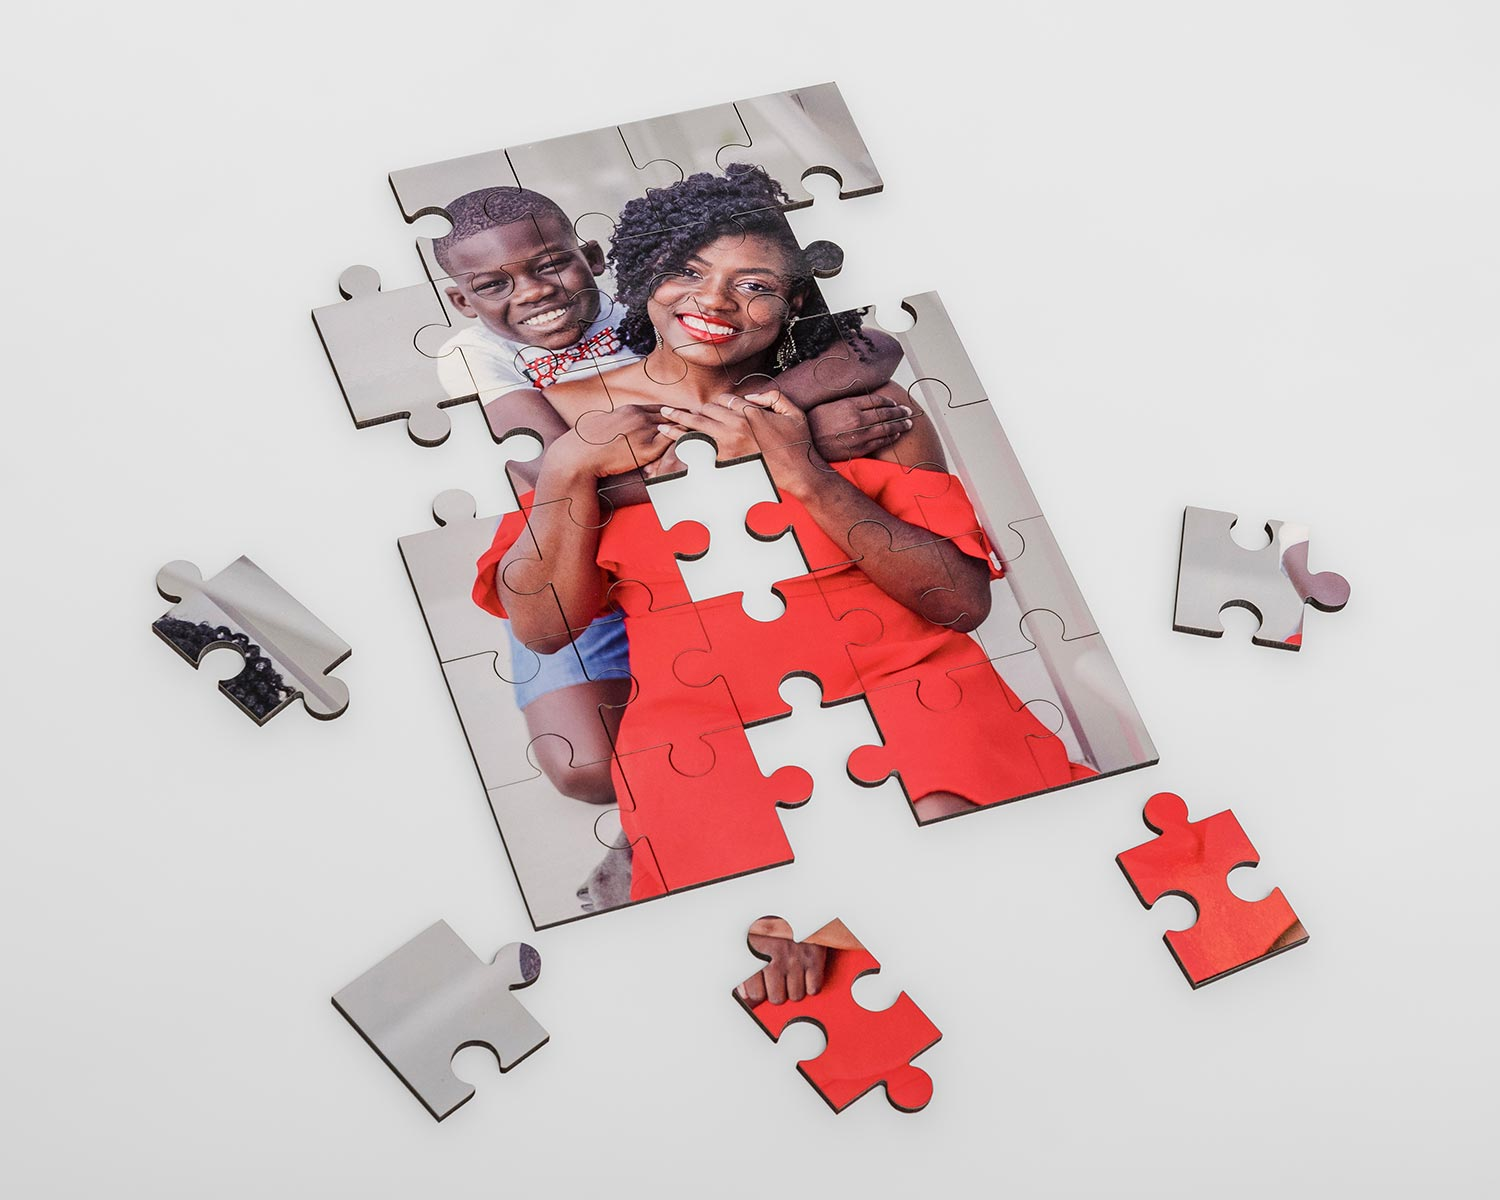 Uncompleted wooden photo jigsaw